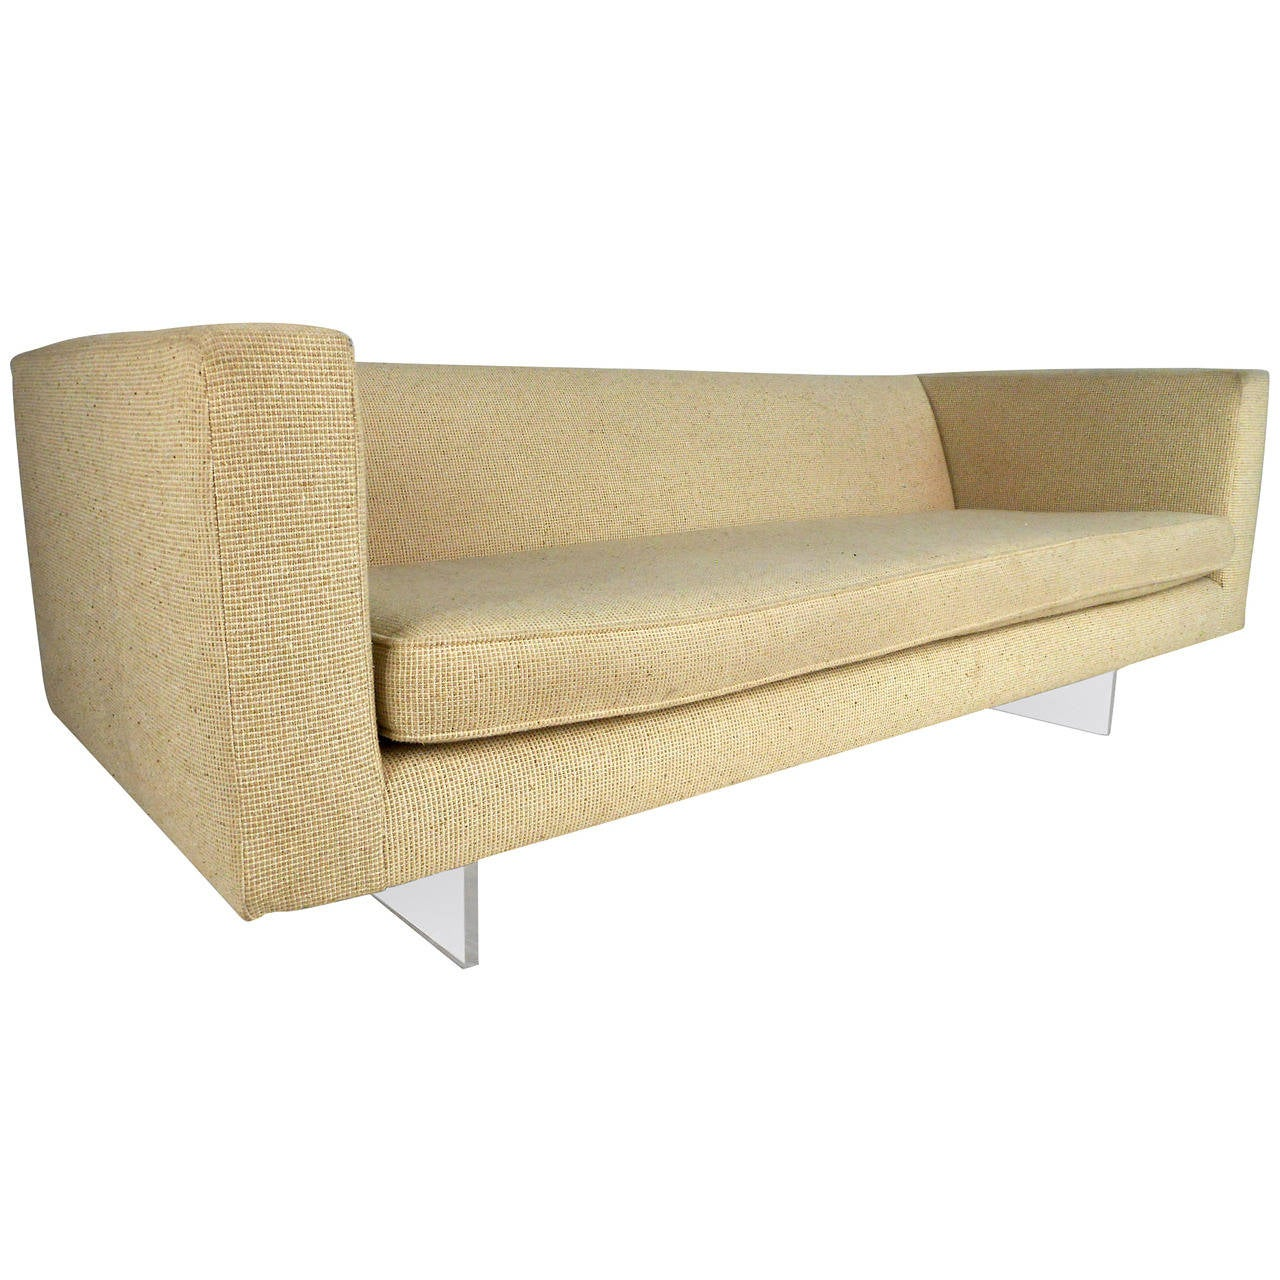 Unusual Sofas For Sale: Unique Mid-Century Modern Harvey Probber Sofa On Lucite